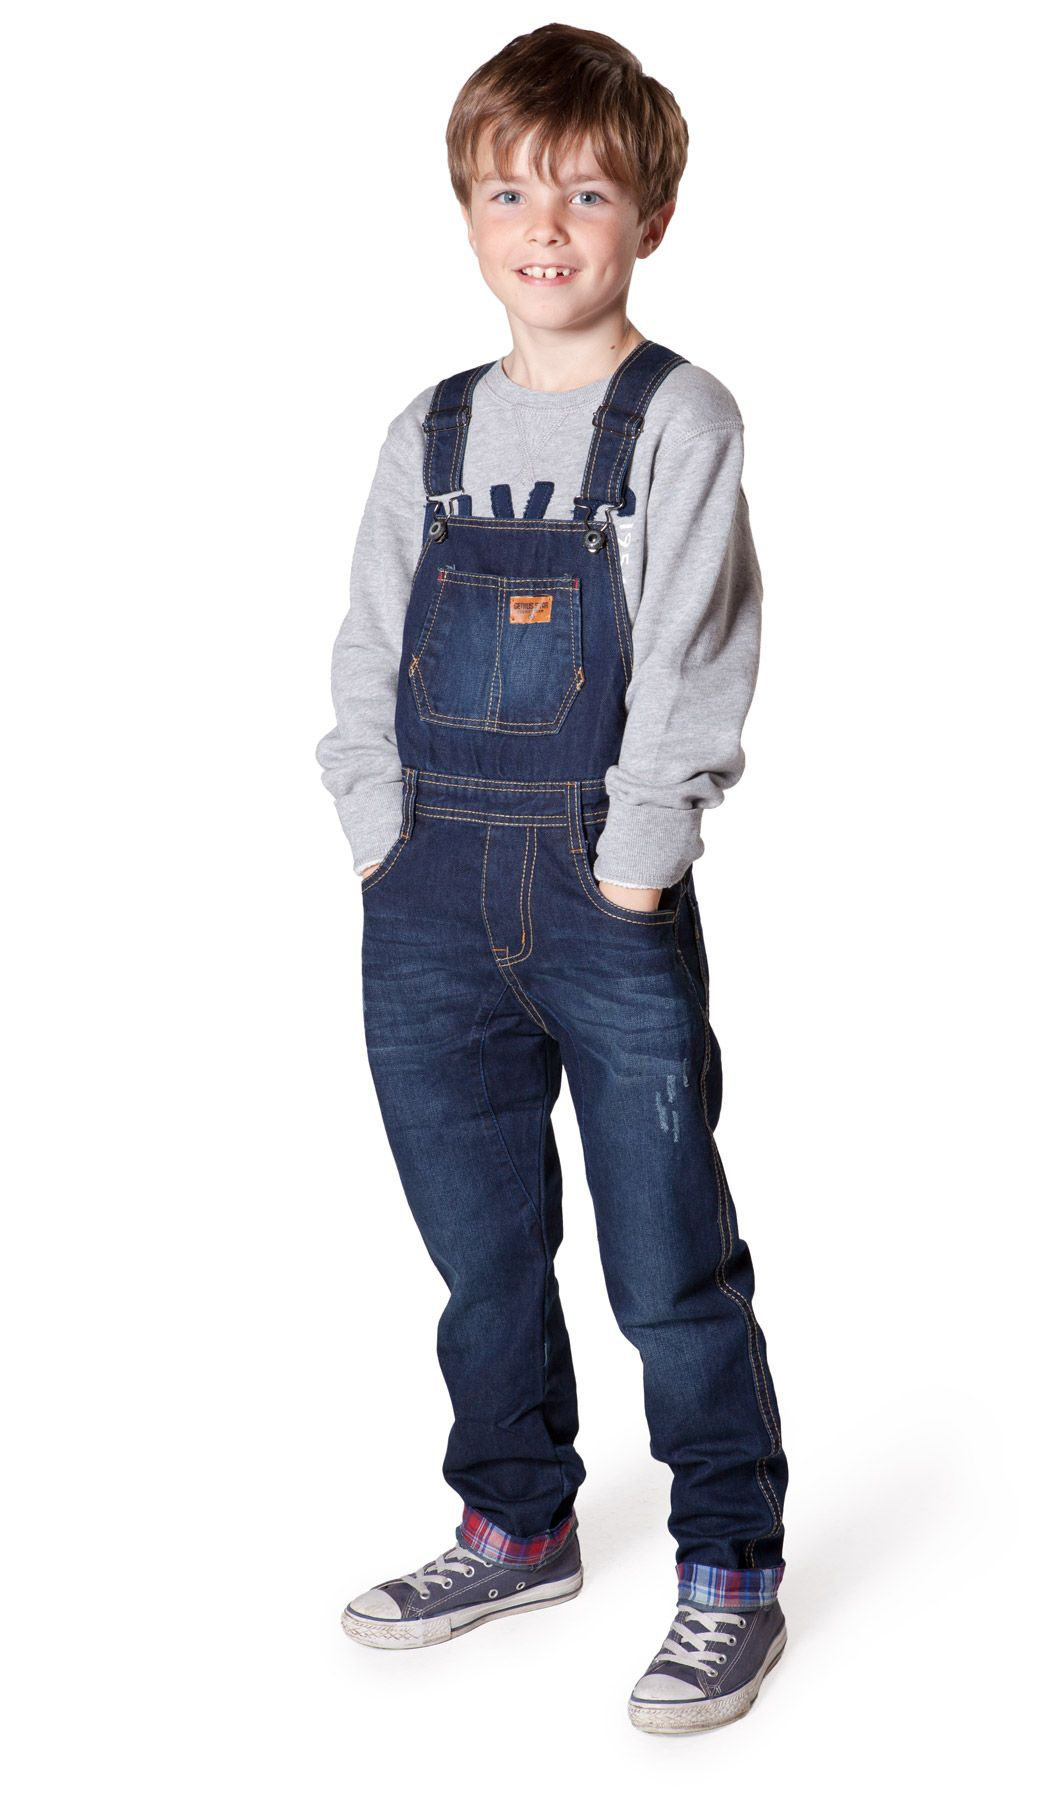 79059fe459f7d5 Majorly cute kids denim dungarees (overalls) with red & blue check turn ups  from Dungarees Online. #kidsdungarees #overalls.